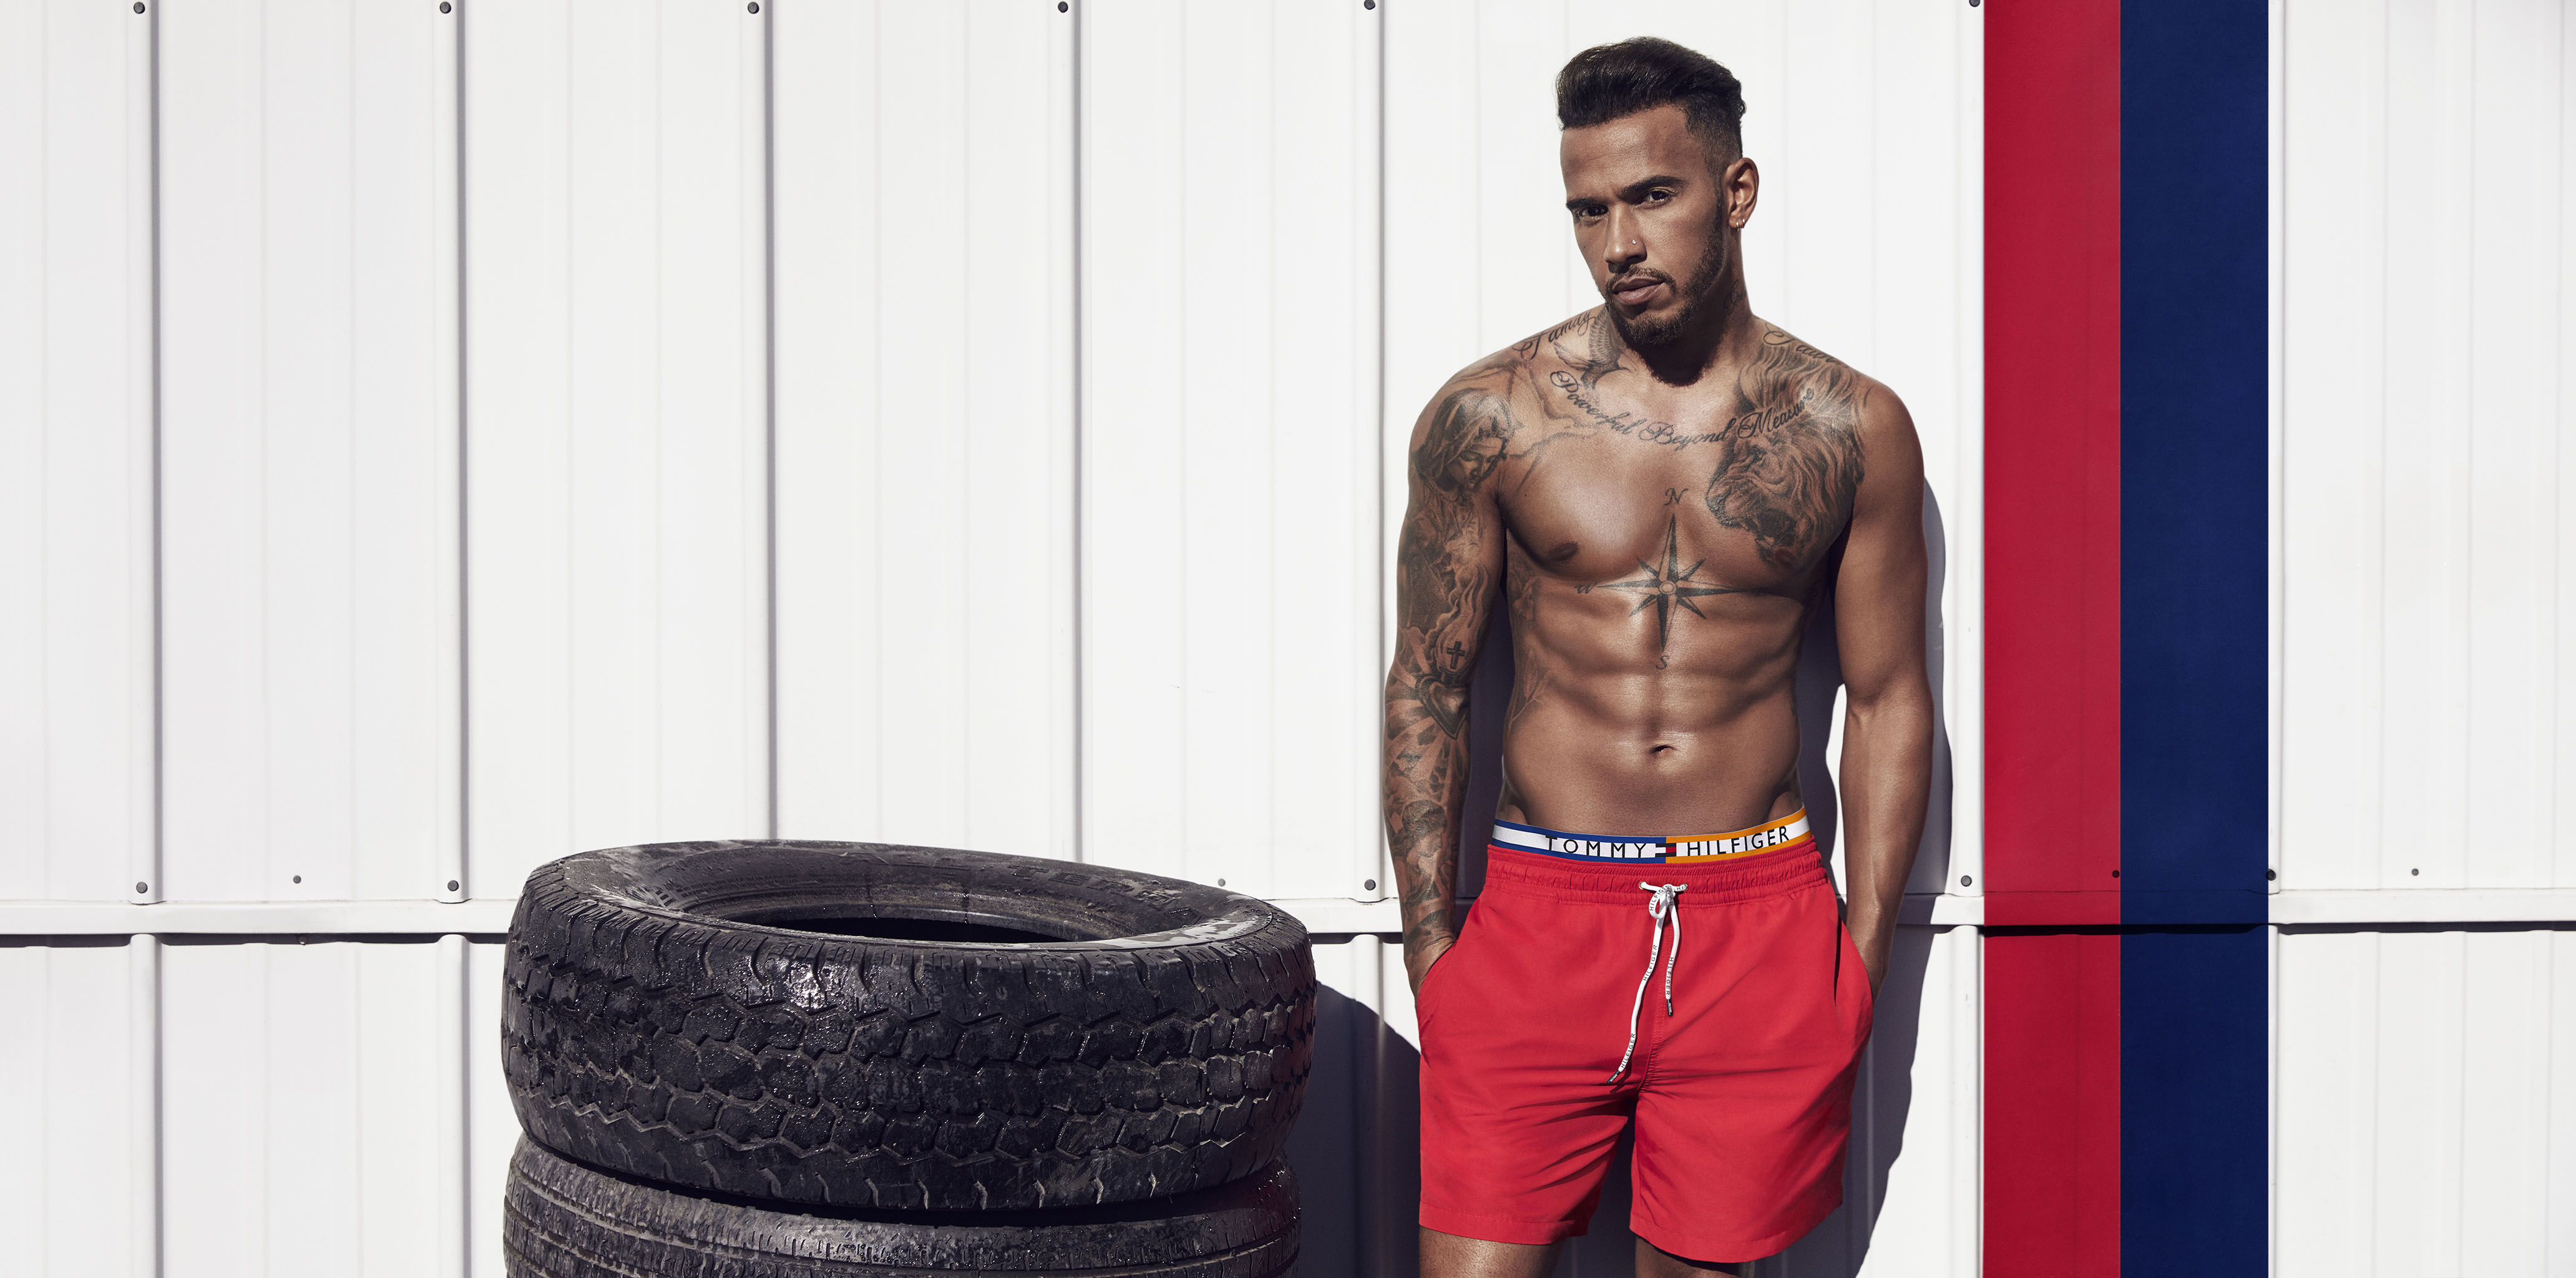 Tommy Hilfiger - Lewis Hamilton runway show will take place in Shanghai